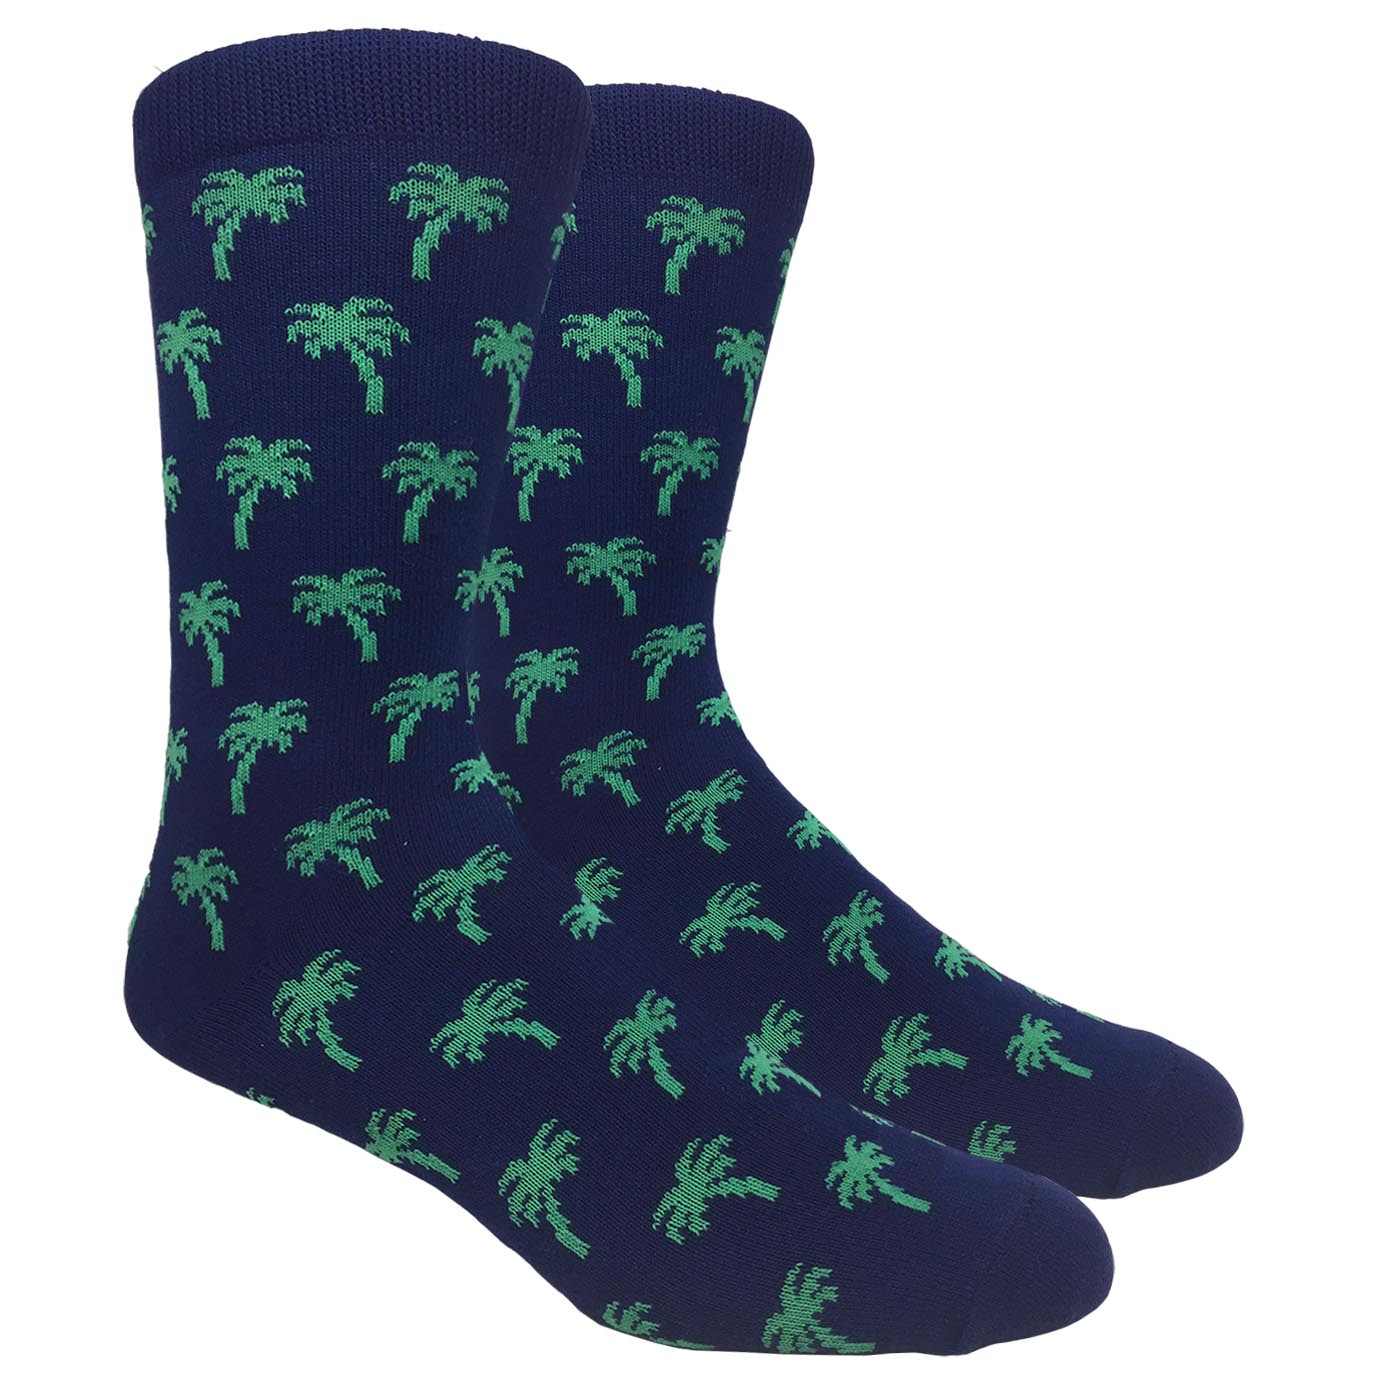 FineFit Black Label Novelty Socks - Navy Blue Palm Trees